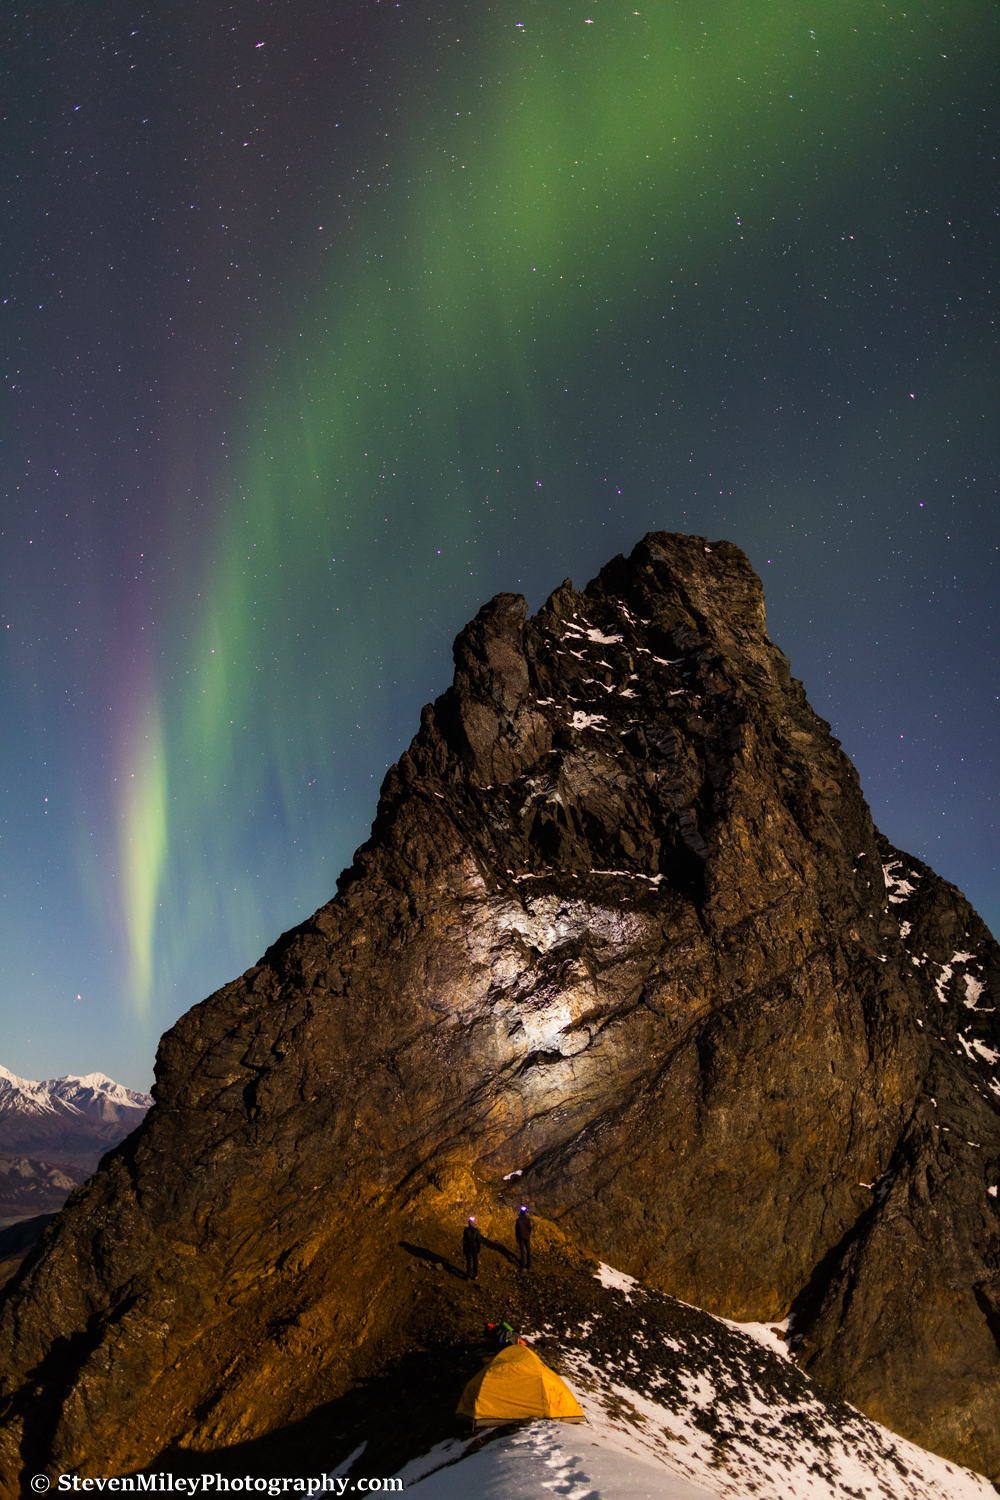 Grant and Matt light up Devils Thumb with their headlamps as the aurora rises.